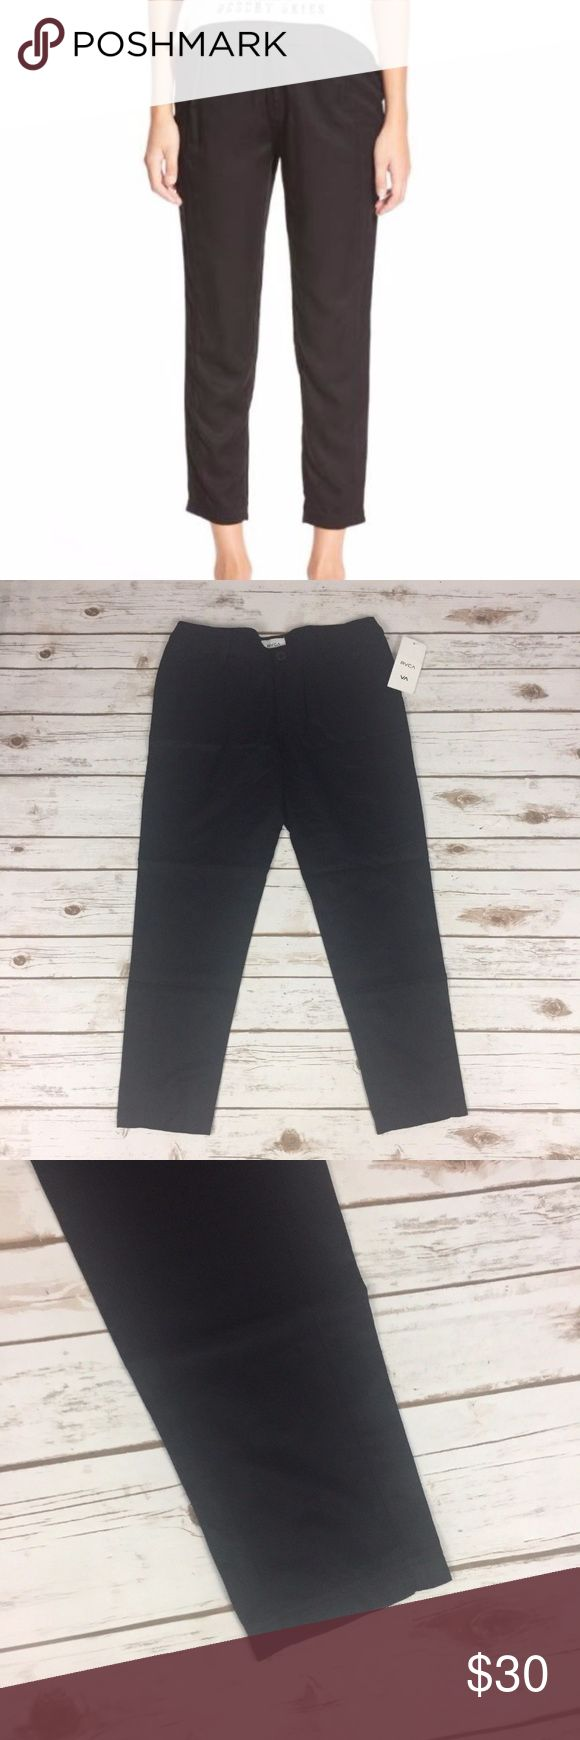 RVCA Size 26 Black Lowlands Crop Pants Skinny NWT RVCA Lowland Cropped Pants Black - Skinny Leg Women's Size 26   New with tags - MSRP $58.00 100% Rayon  A relaxed fit and ankle-grazing length play up the laid-back attitude of these comfy woven pants. Front button closure. Front slant pockets; back patch pocket  Measurements (in inches): Waist (side to side) - 15.5 Inseam - 25.5 Rise - 9 RVCA Pants Ankle & Cropped